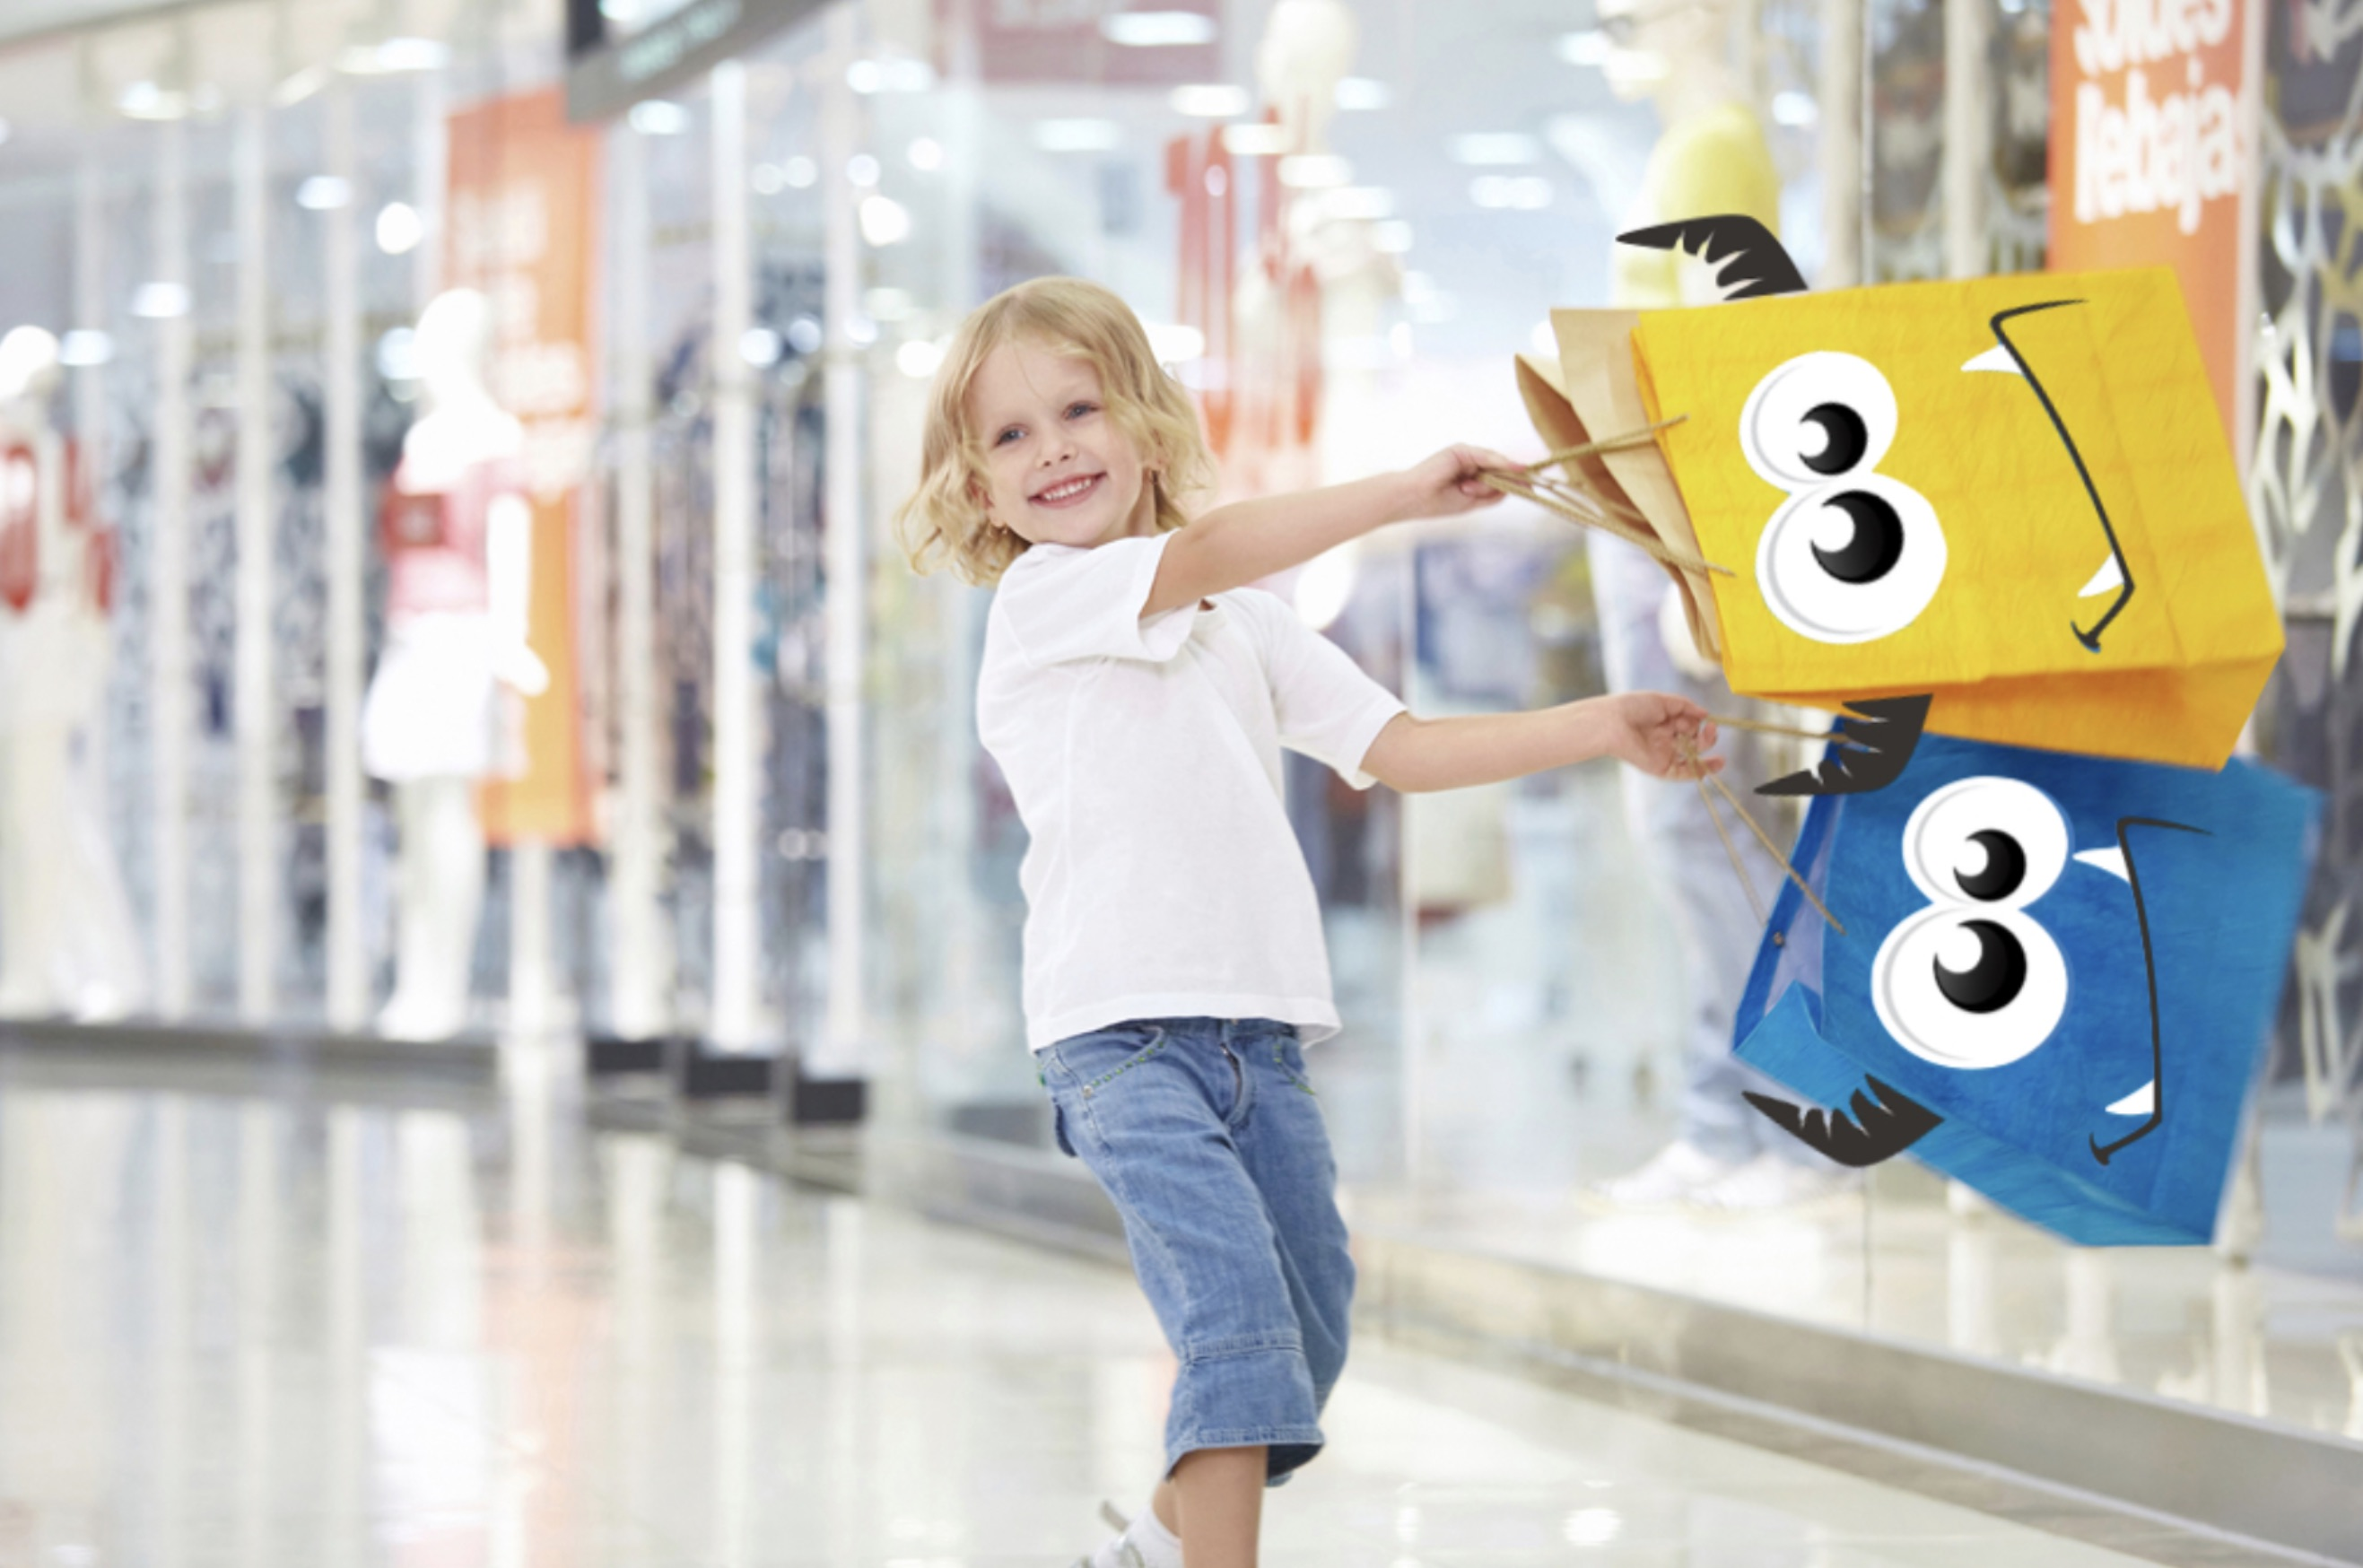 boy happily holding retail monster shopping bags